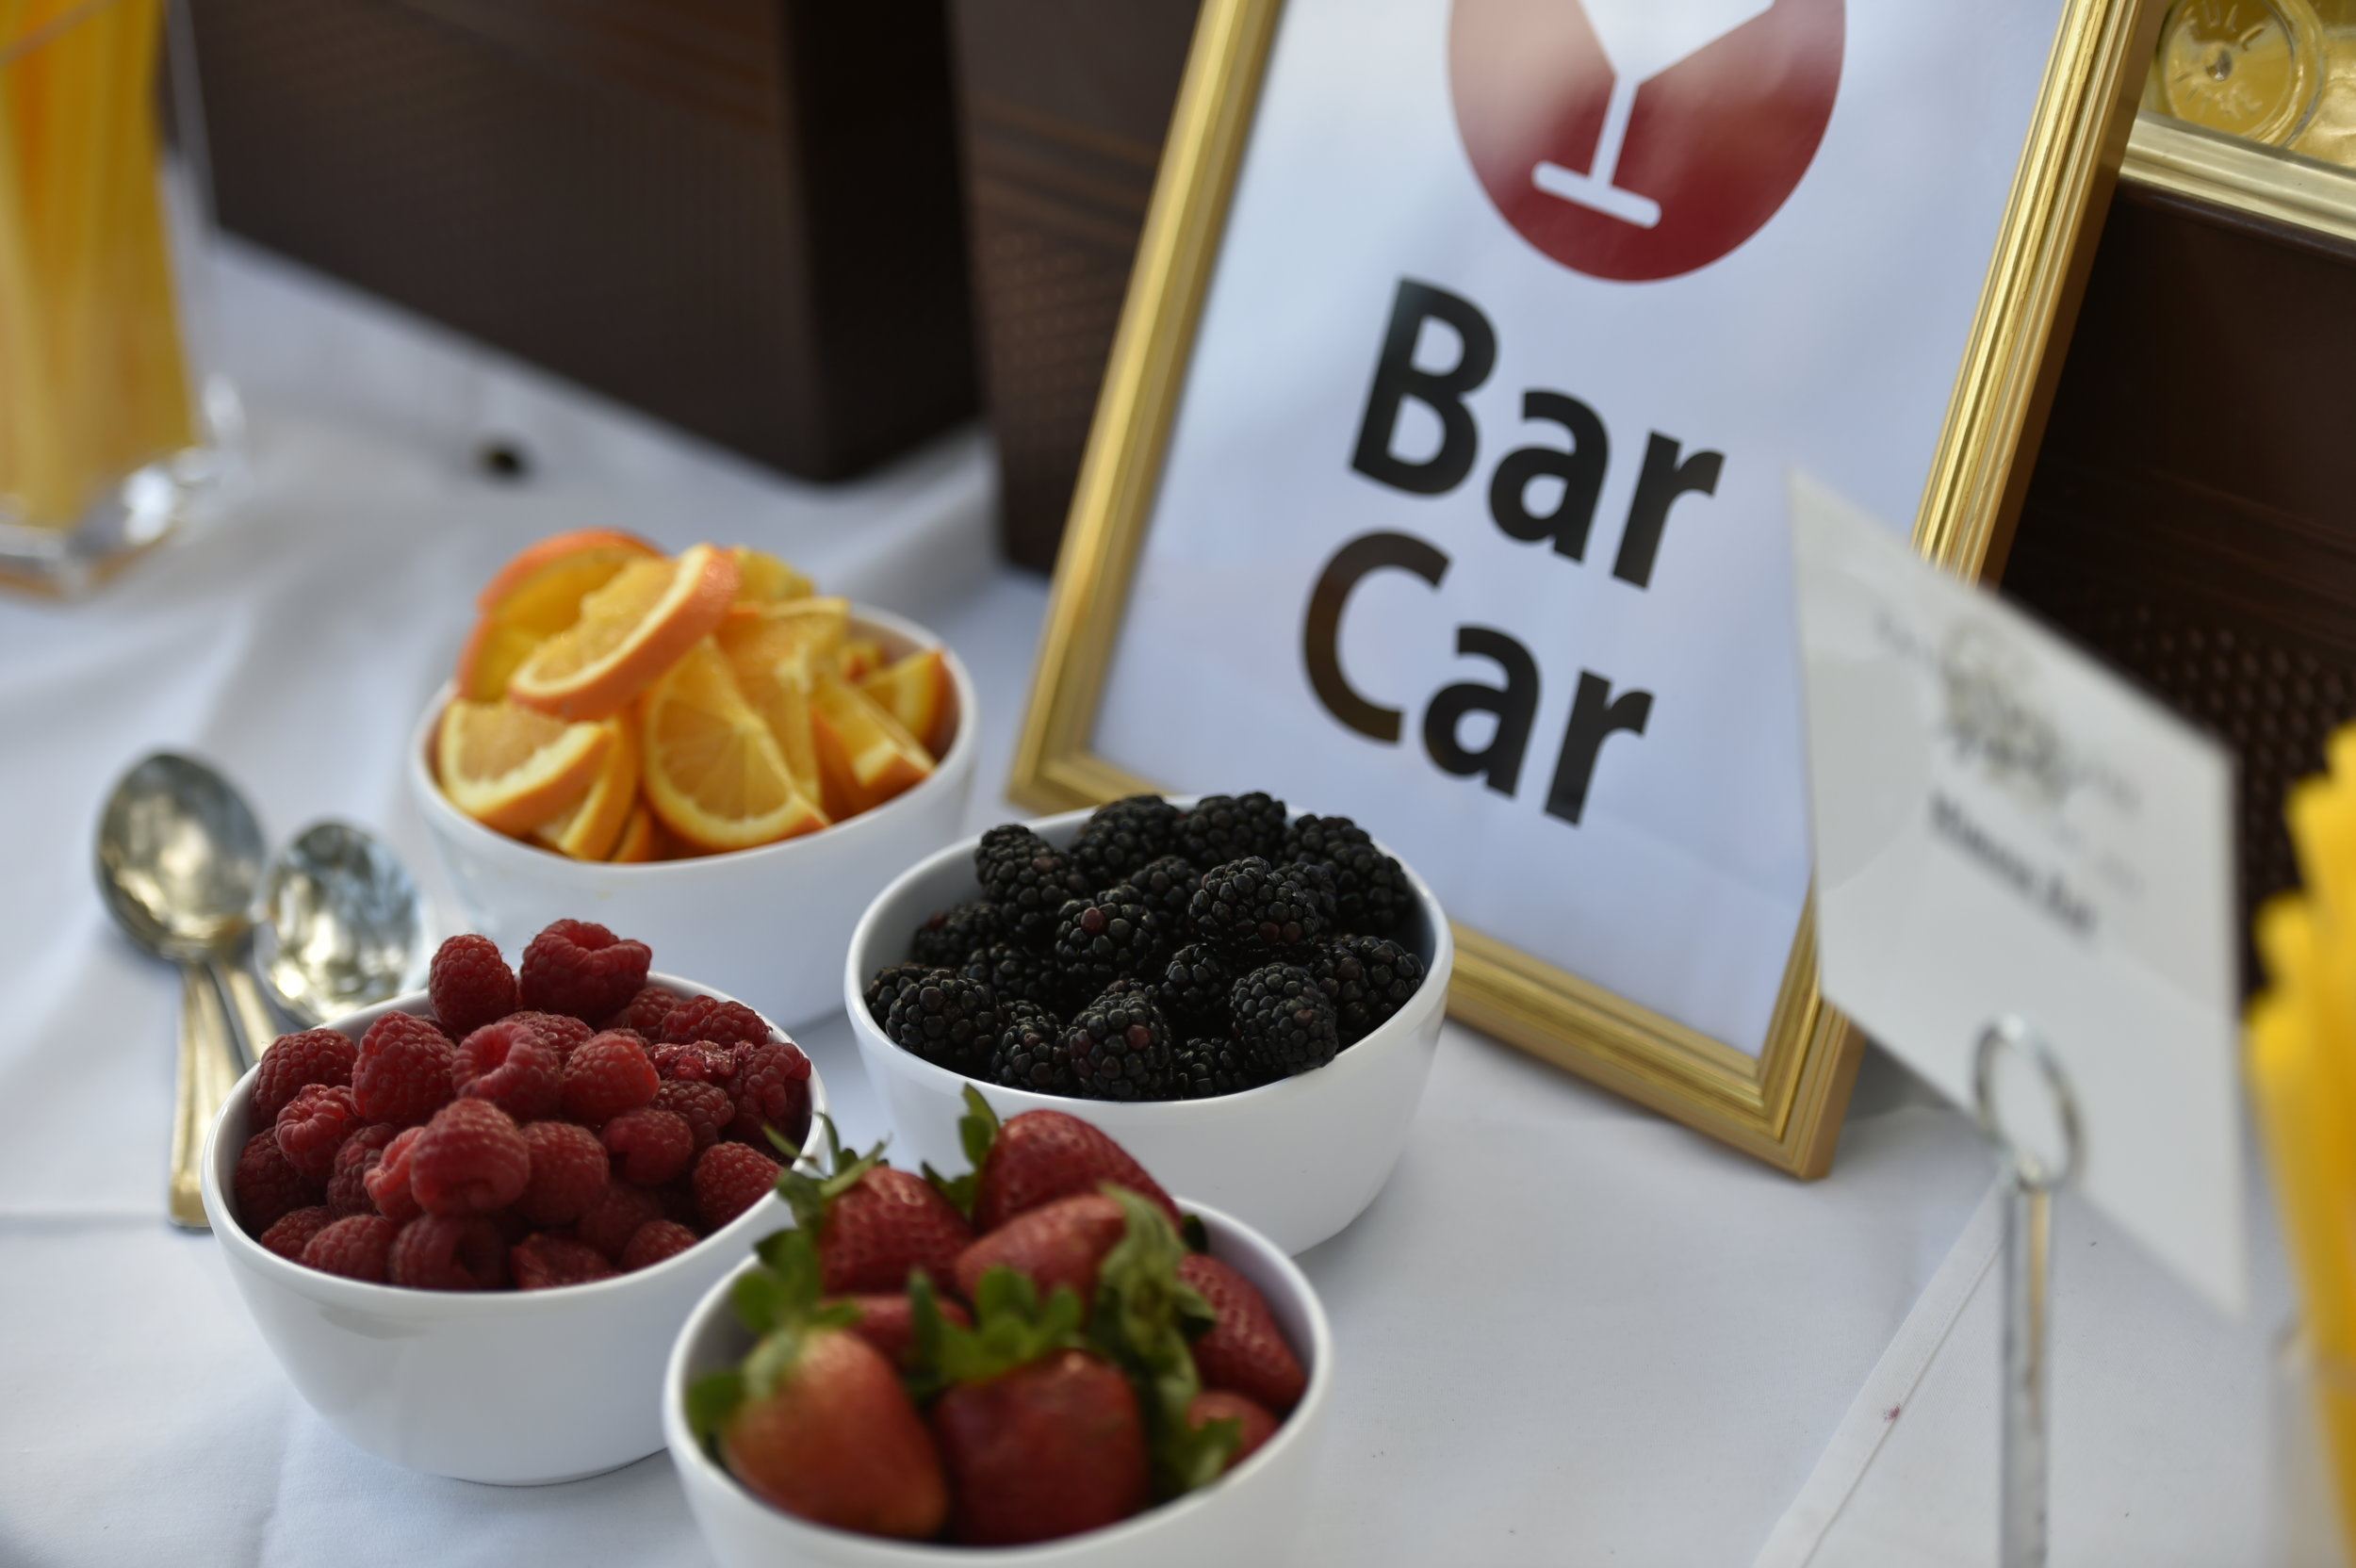 A mimosa 'bar car' provided guests with fresh fruit, juice, and champagne to whip up fun and fresh concoctions.